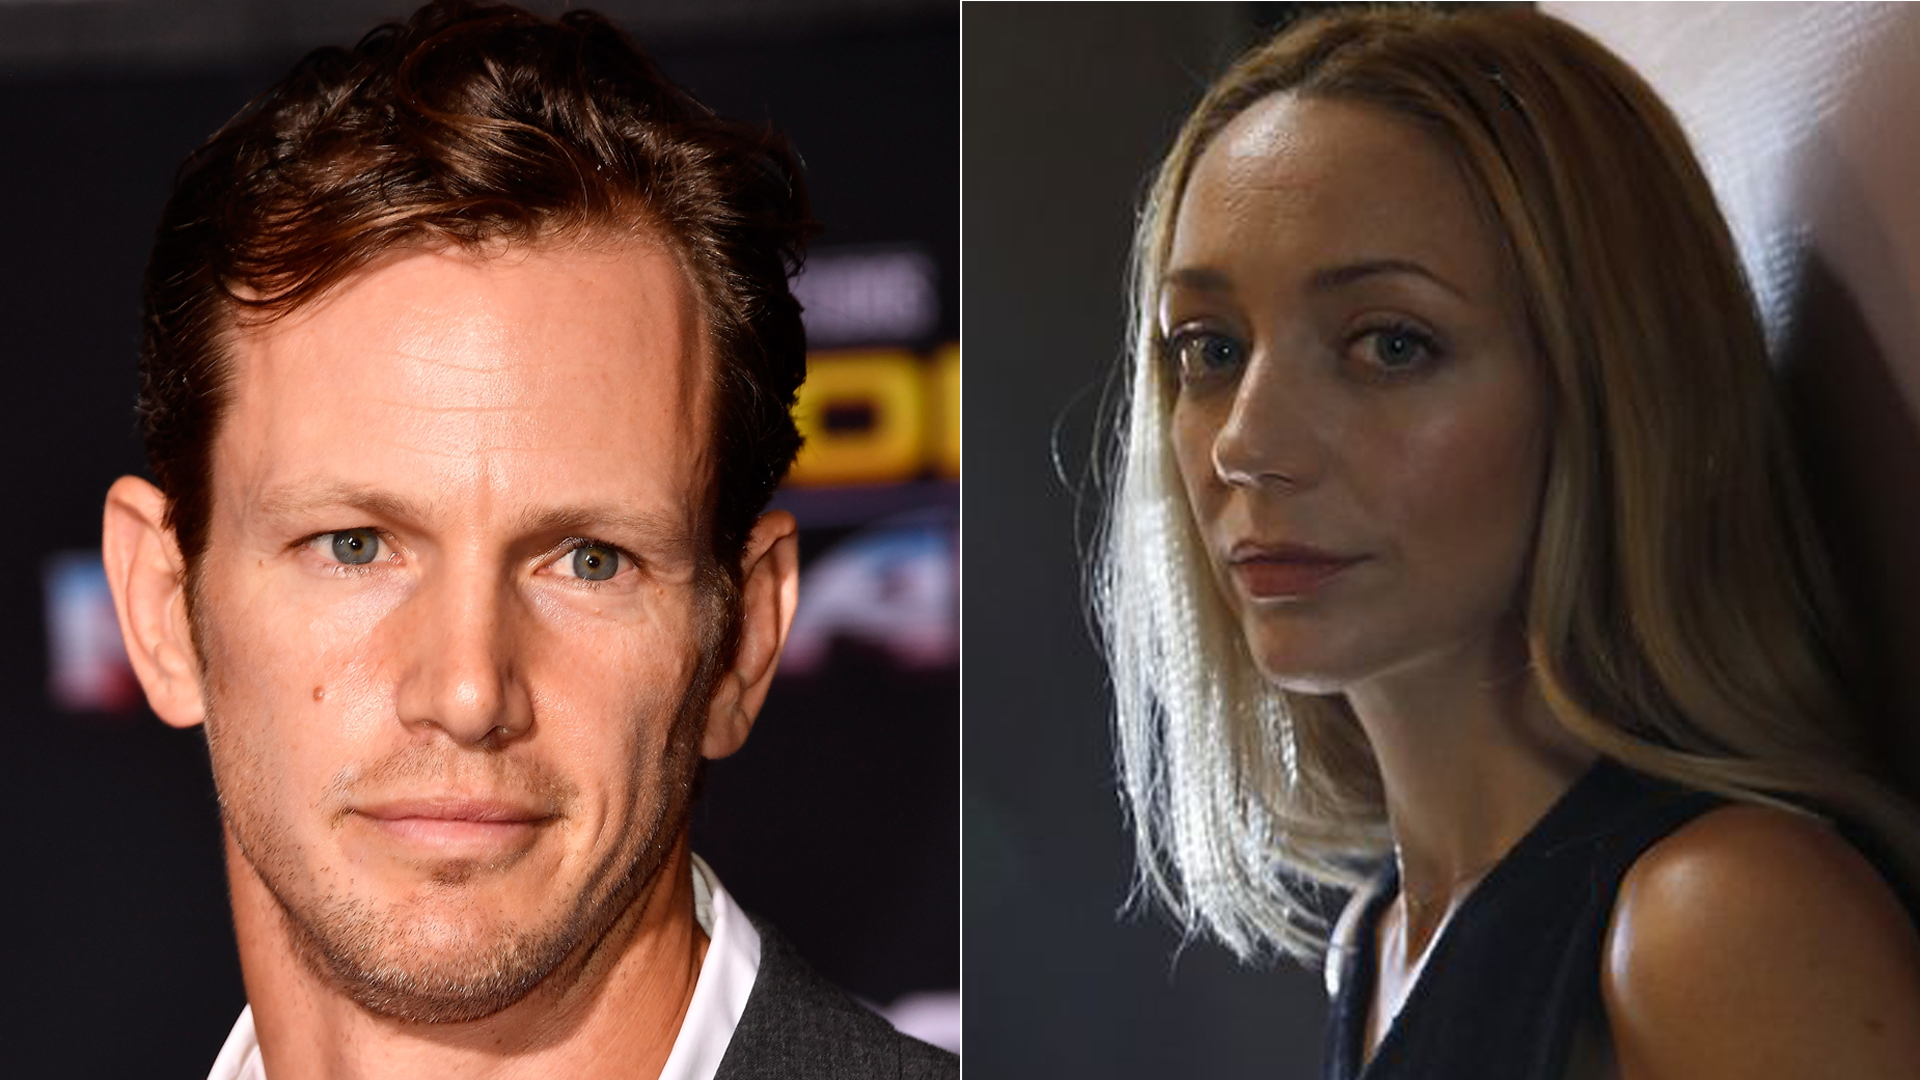 From left to right: Kip Pardue is seen in Los Angeles on Oct. 10, 2017. (Credit: Frazer Harrison/Getty Images) Actress Sarah Scott is seen in an undated photo. (Credit: Christina House / Los Angeles Times)